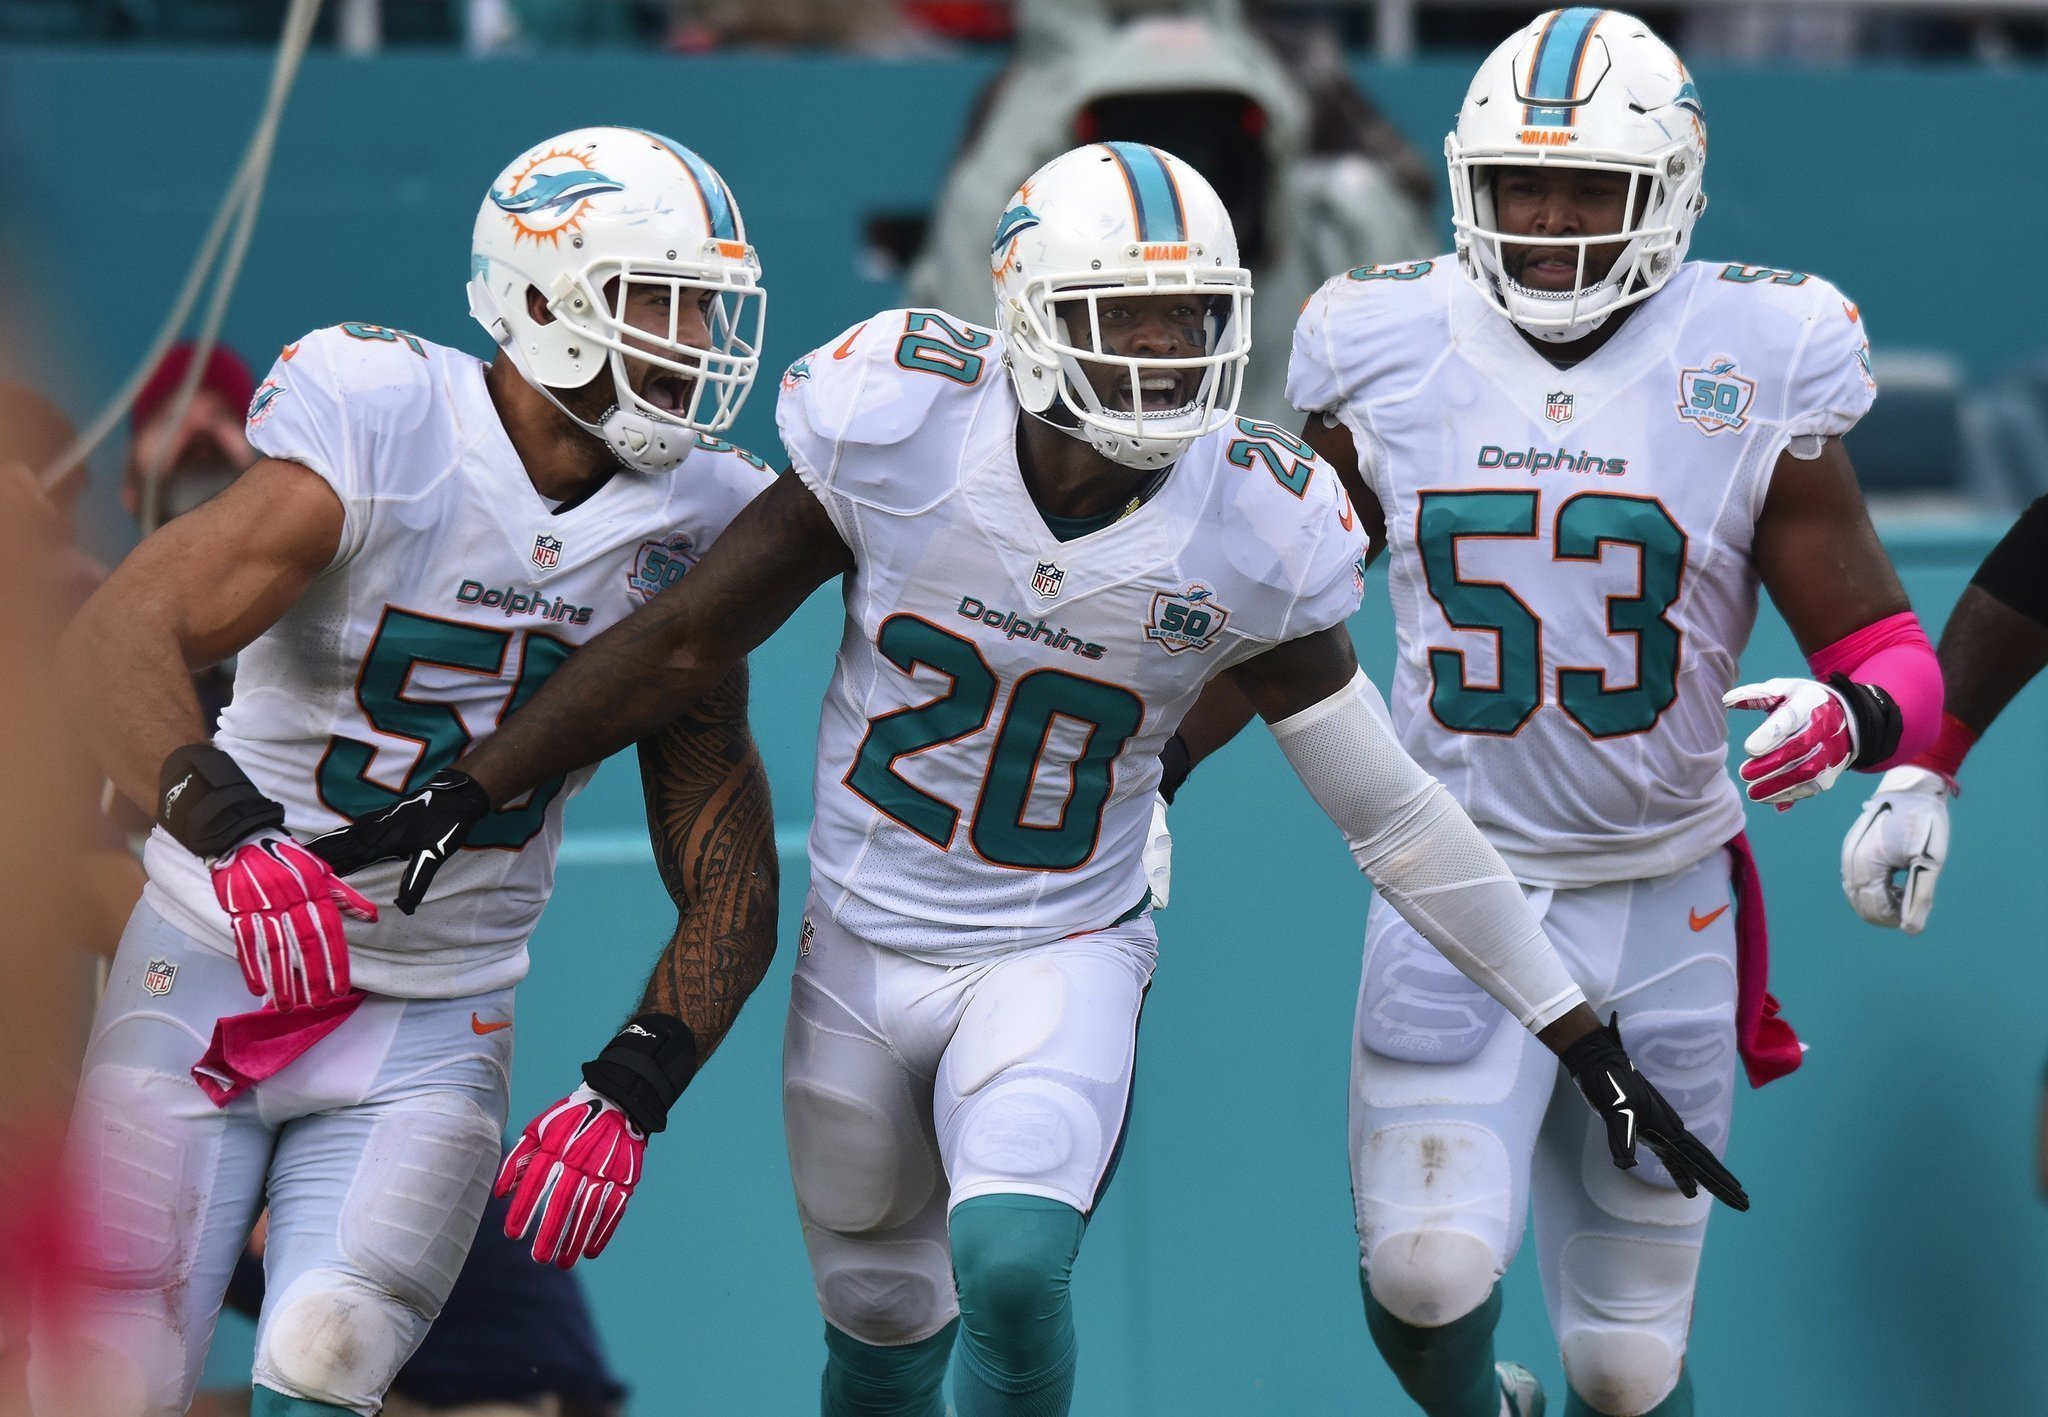 Sfl-omar-kelly-breaks-down-dolphins-depth-chart-after-first-wave-of-free-agency-20170314